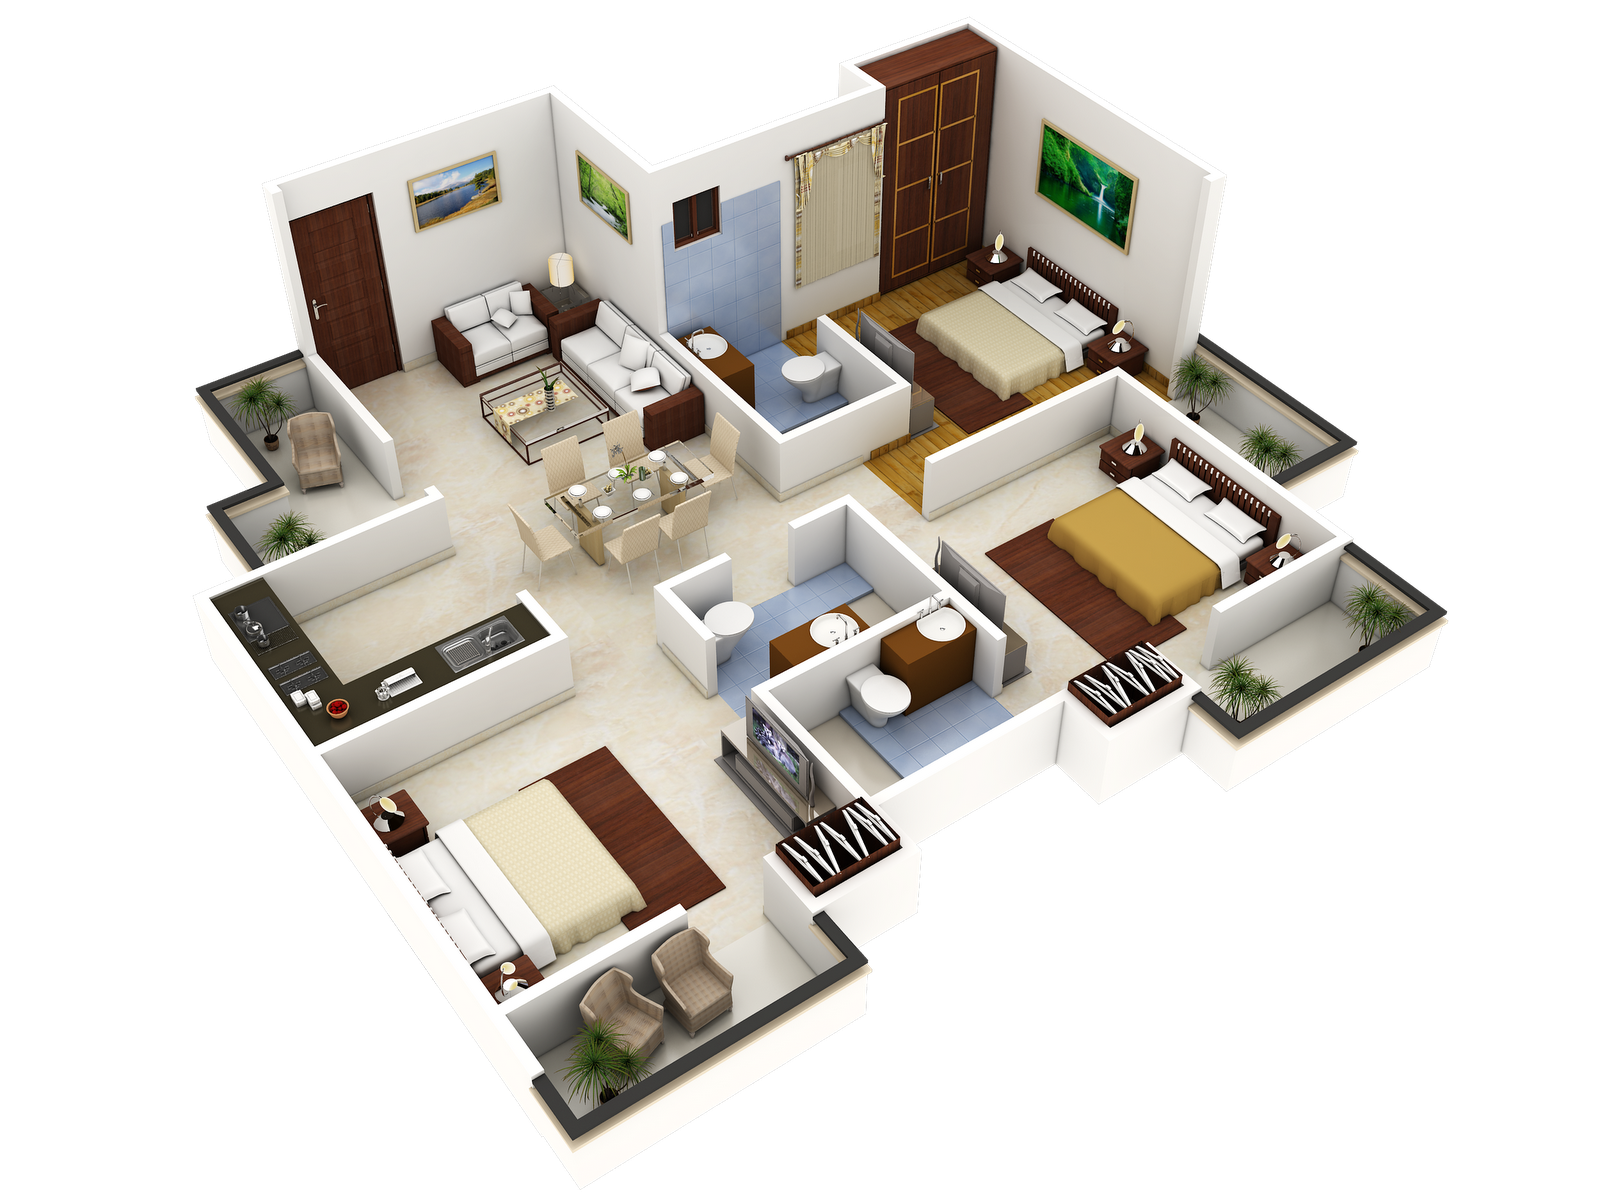 3 bedroom house designs 3d buscar con google grandes for 3d house design